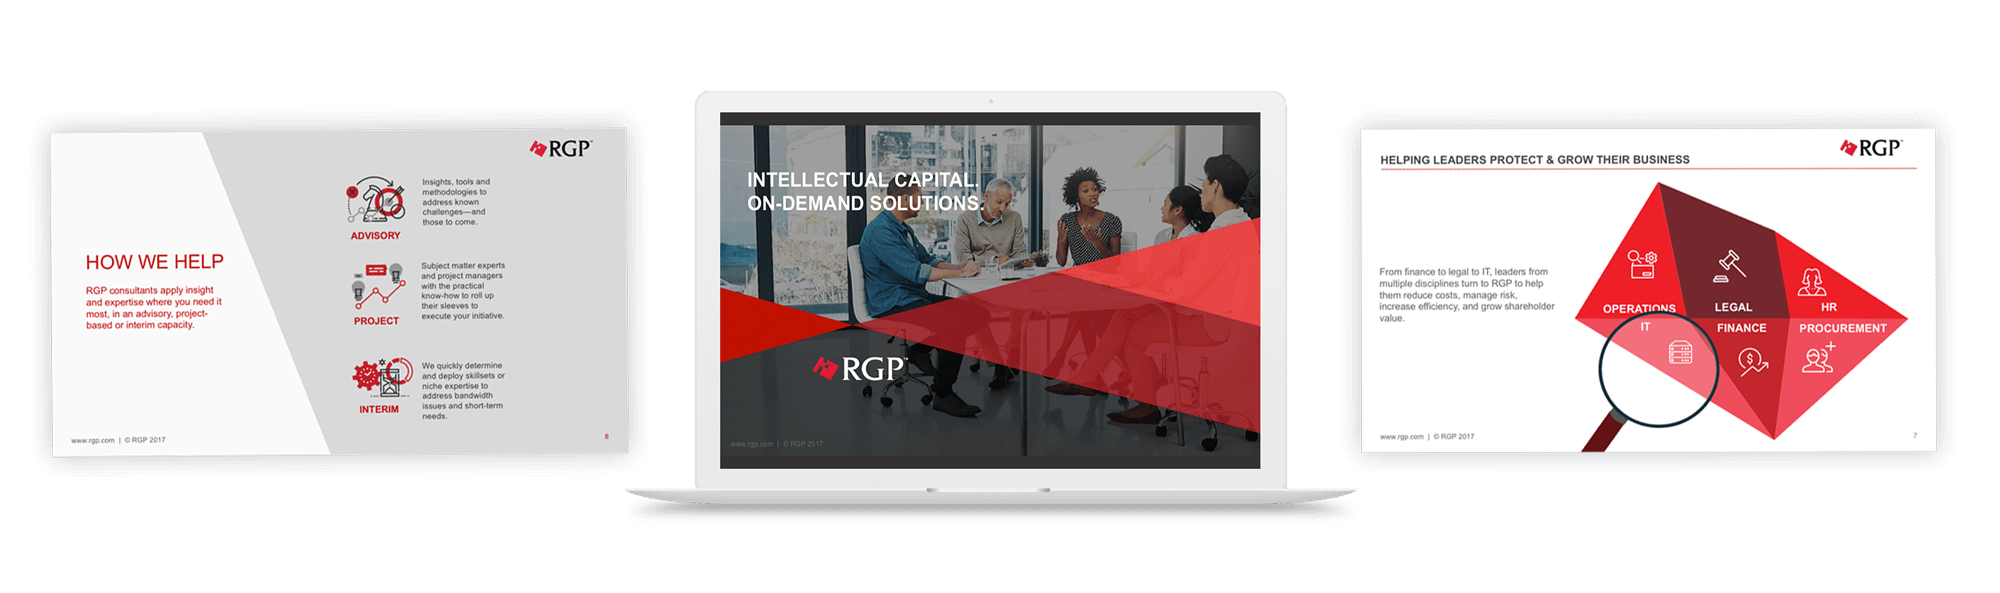 sales meeting deck to enable RGP's sales team for success. Included new messaging, corporate positioning, solutions overviews, buyer persona and vertical focused slides, and customer success stories.